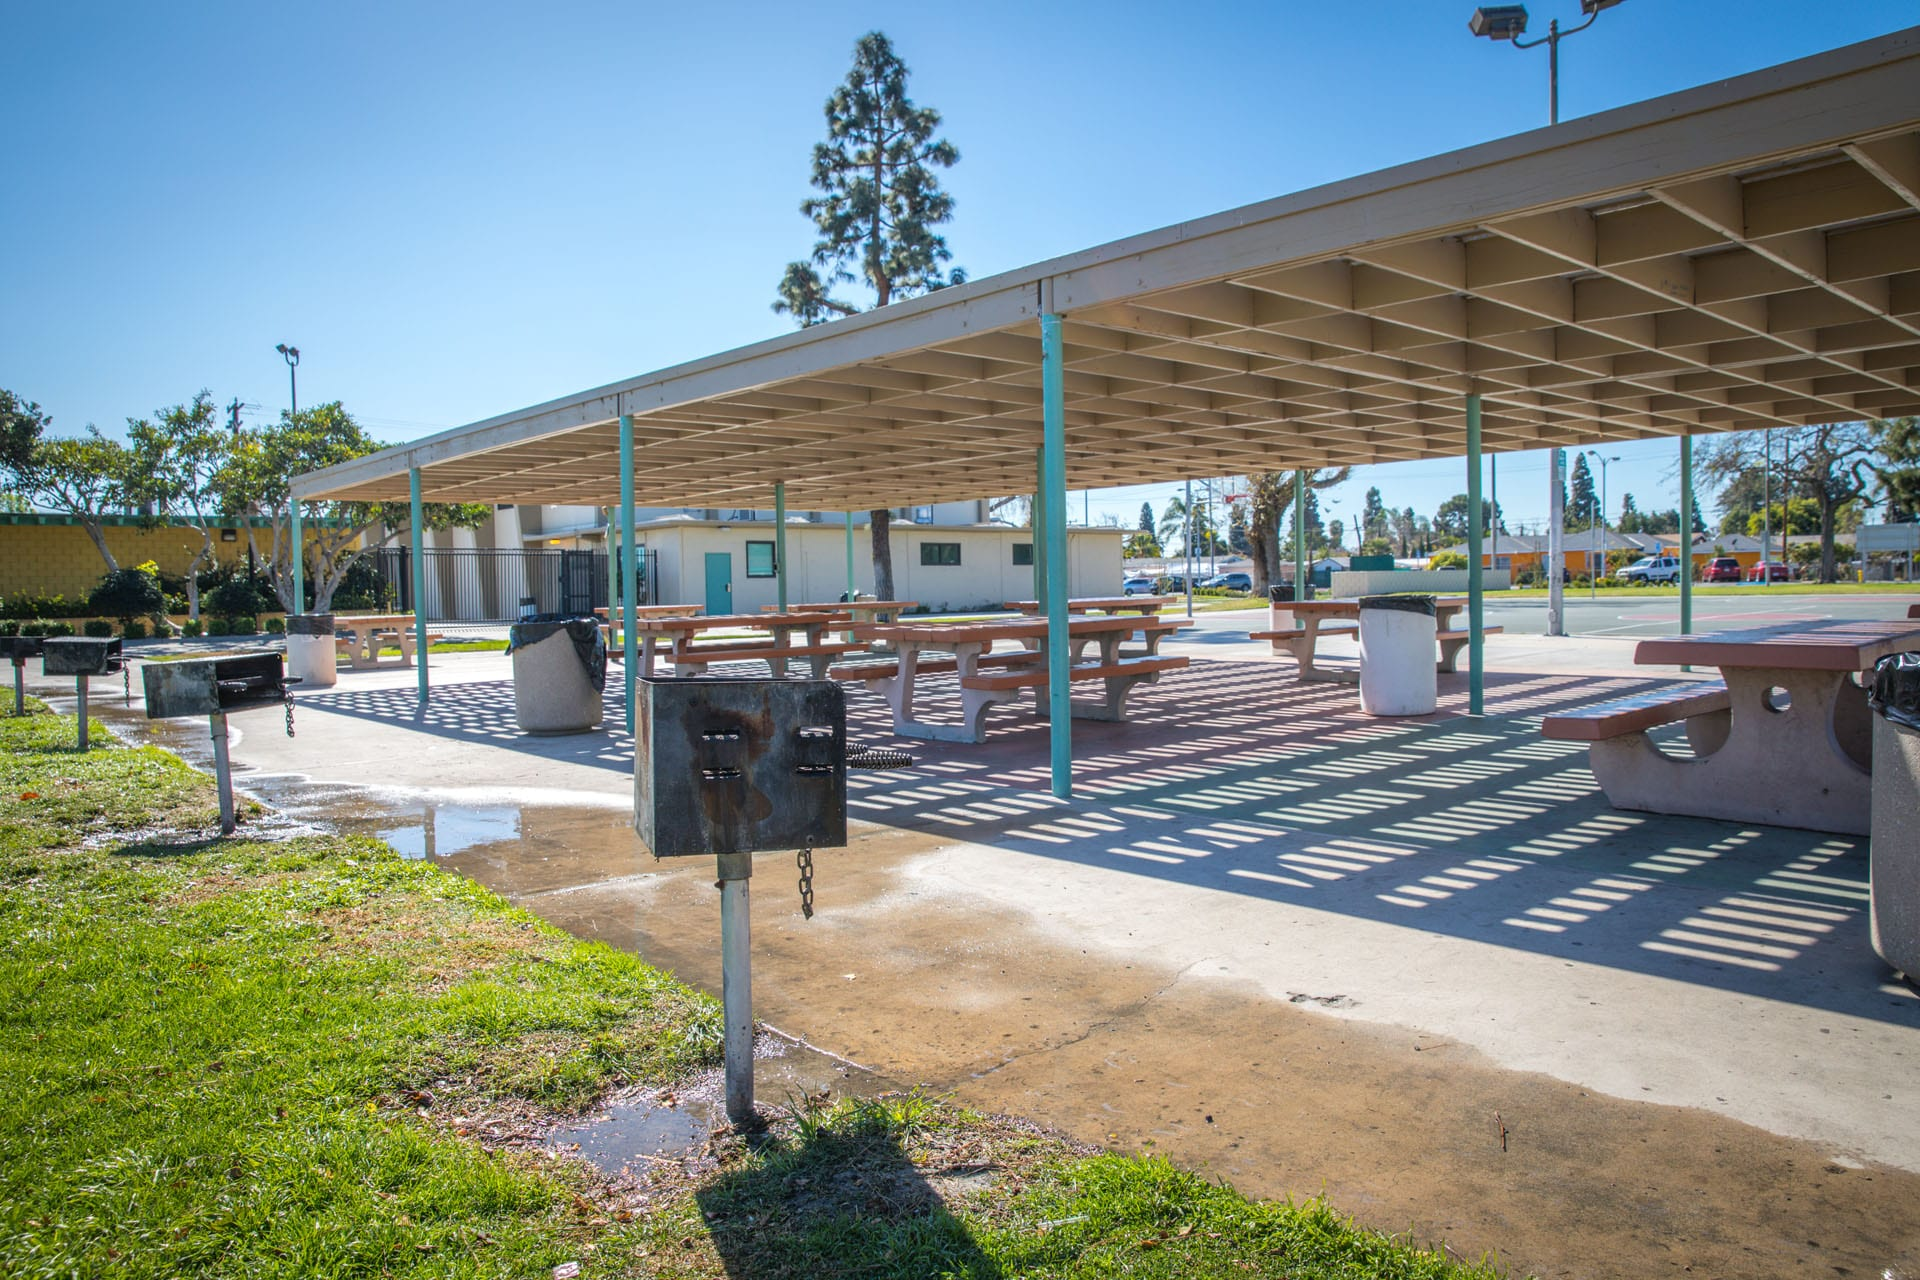 BBQ grills next to picnic tables under an awning